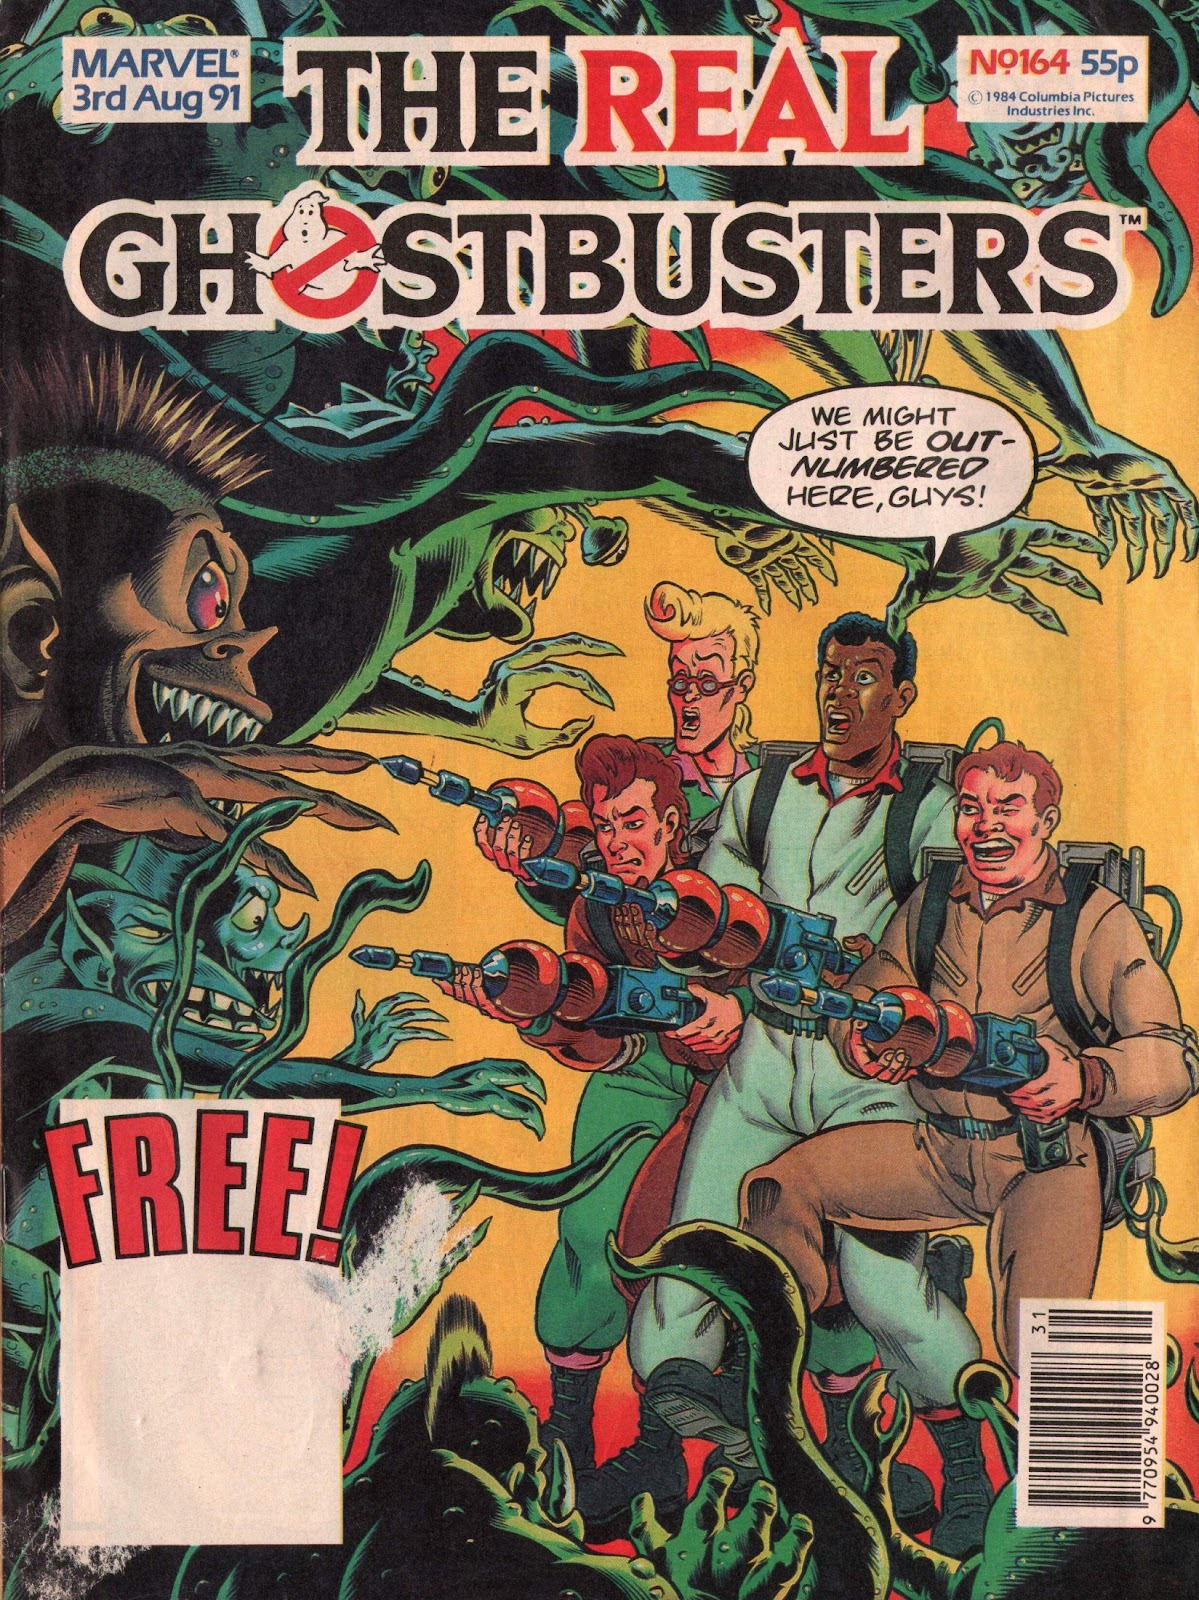 The Real Ghostbusters 164 Page 1